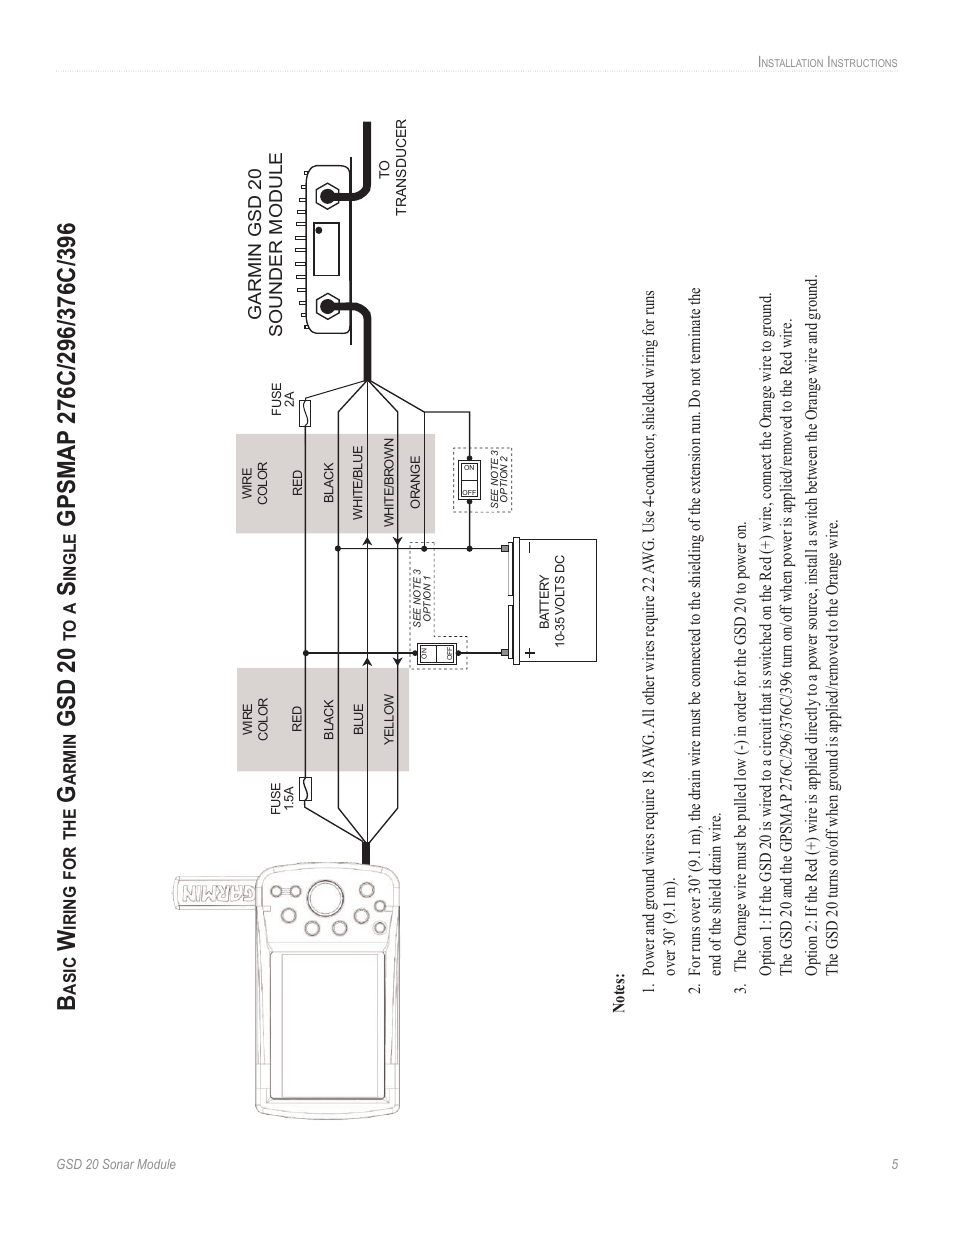 Gsd 20 | Garmin GSD-20 User Manual | Page 7 / 12 Garmin Wiring Diagram on